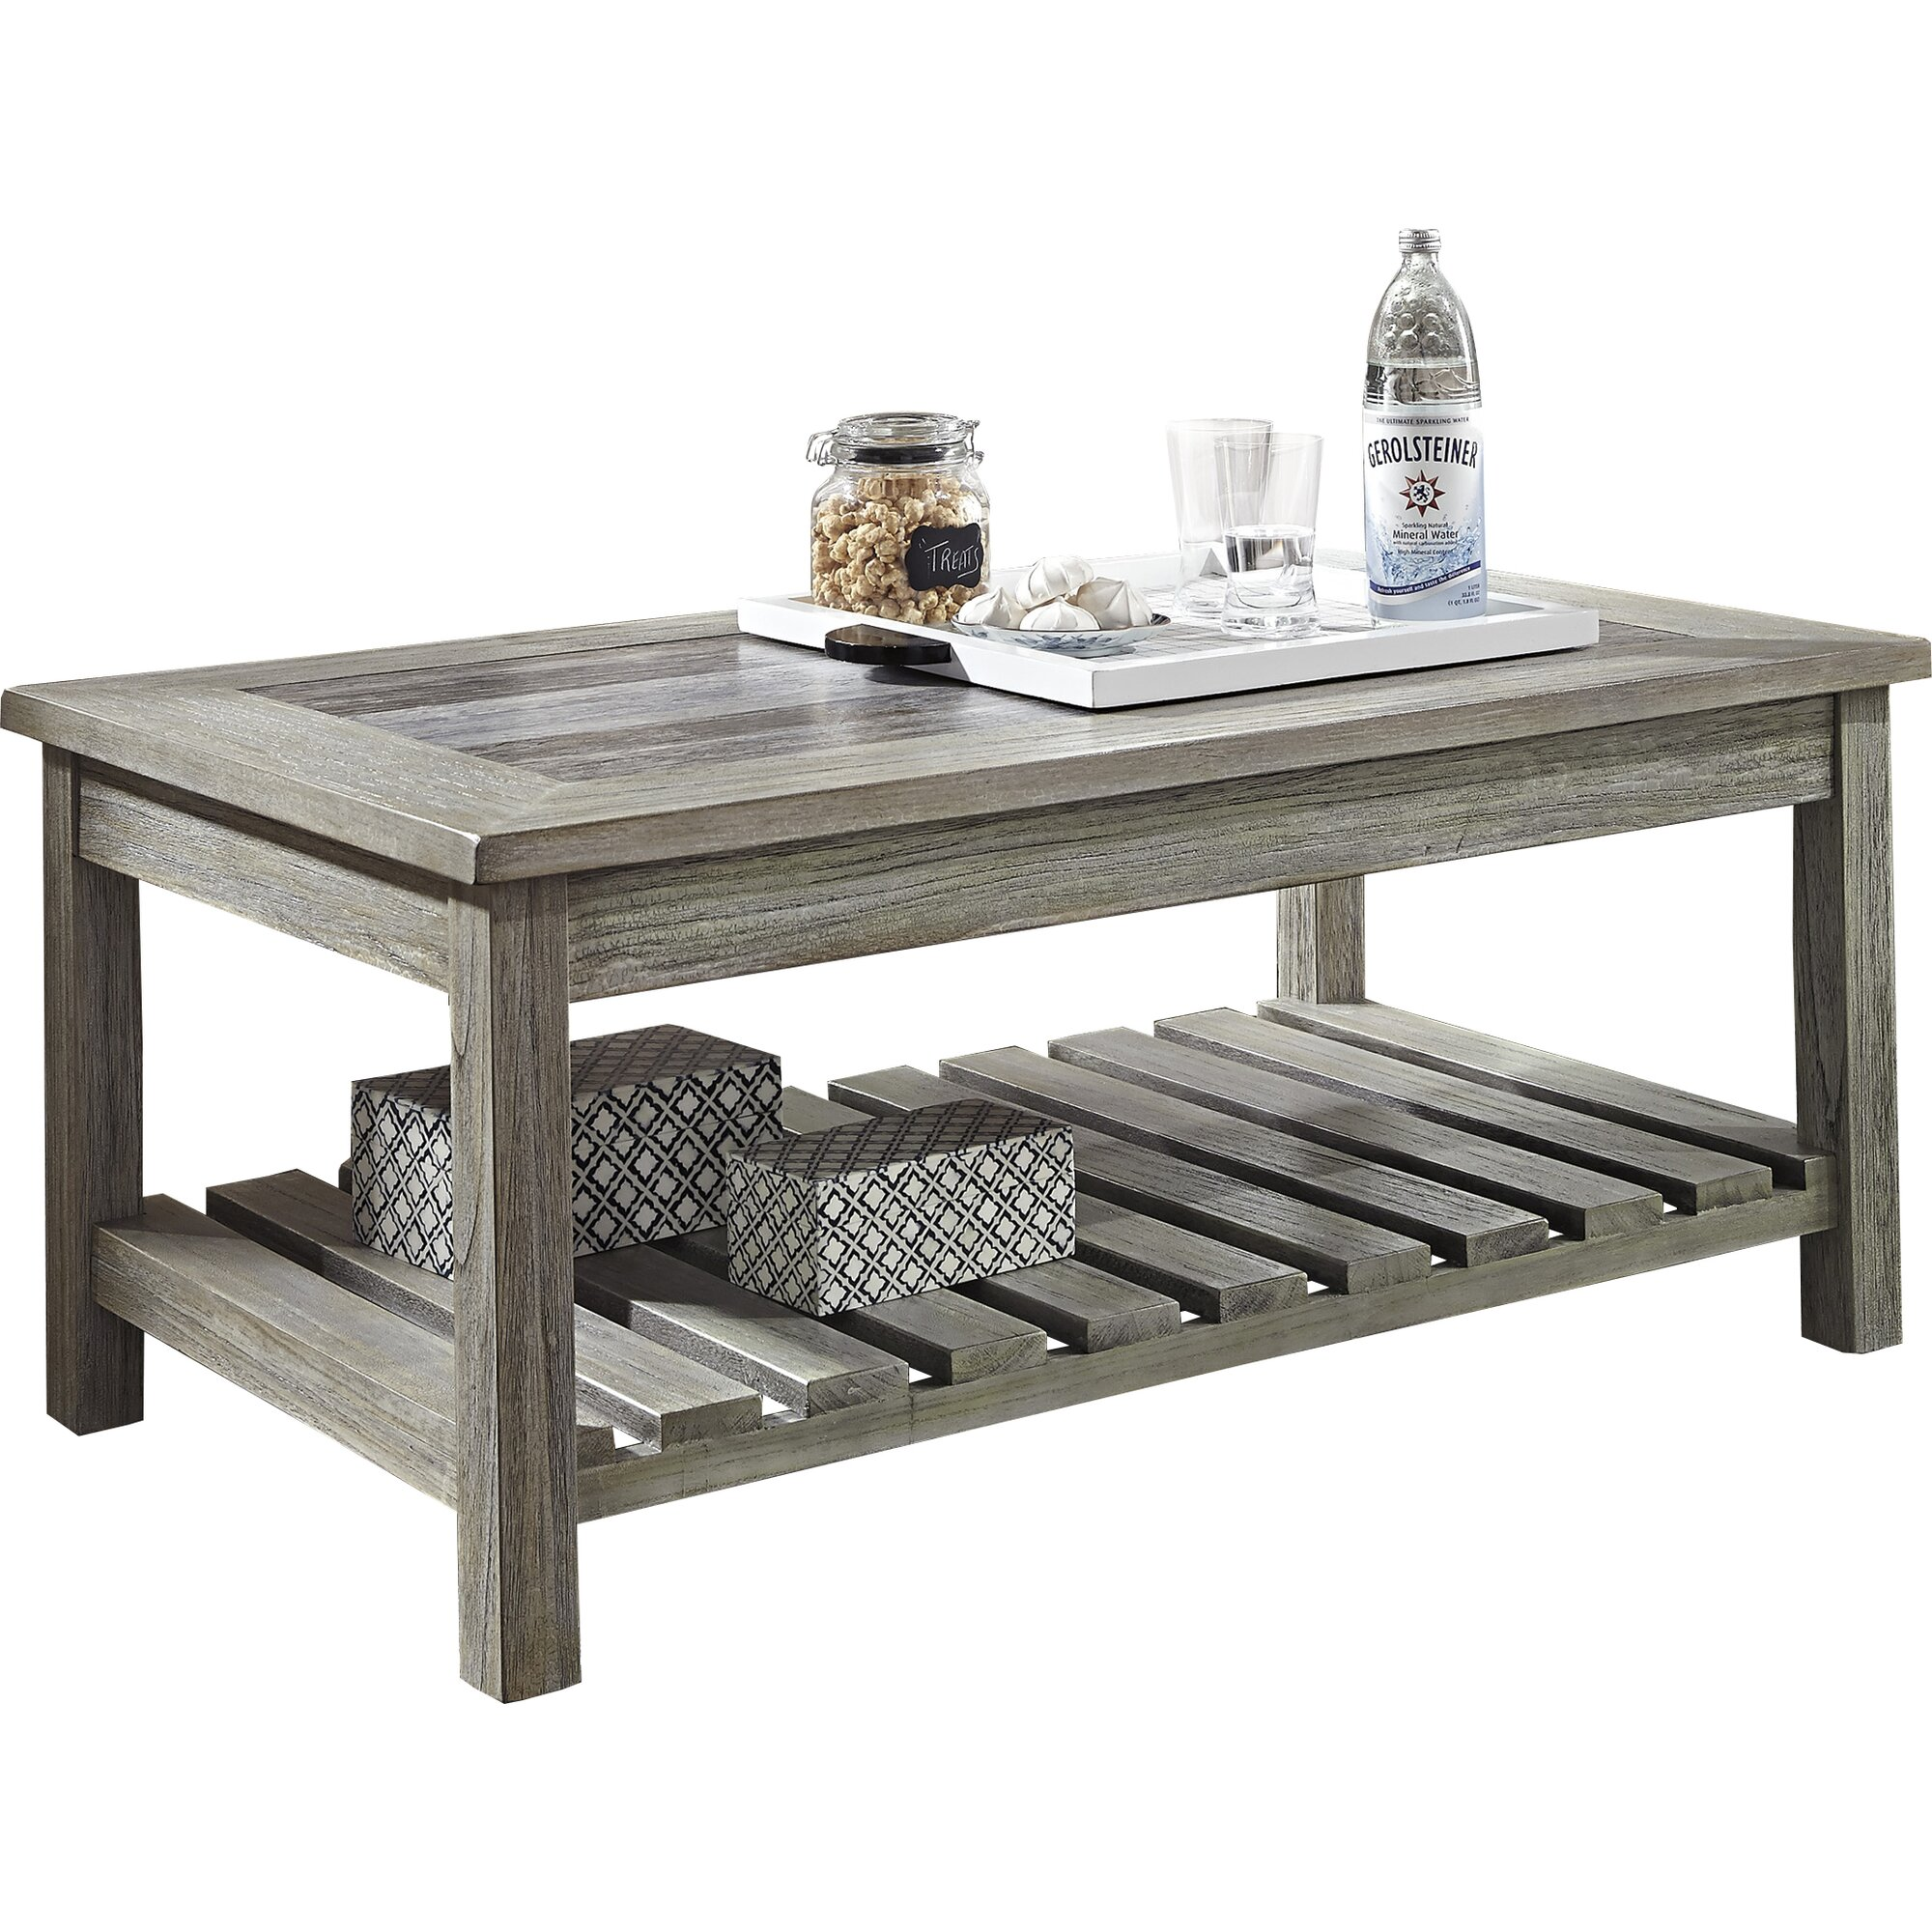 Beachcrest Home Briarwood Coffee Table With Magazine Rack